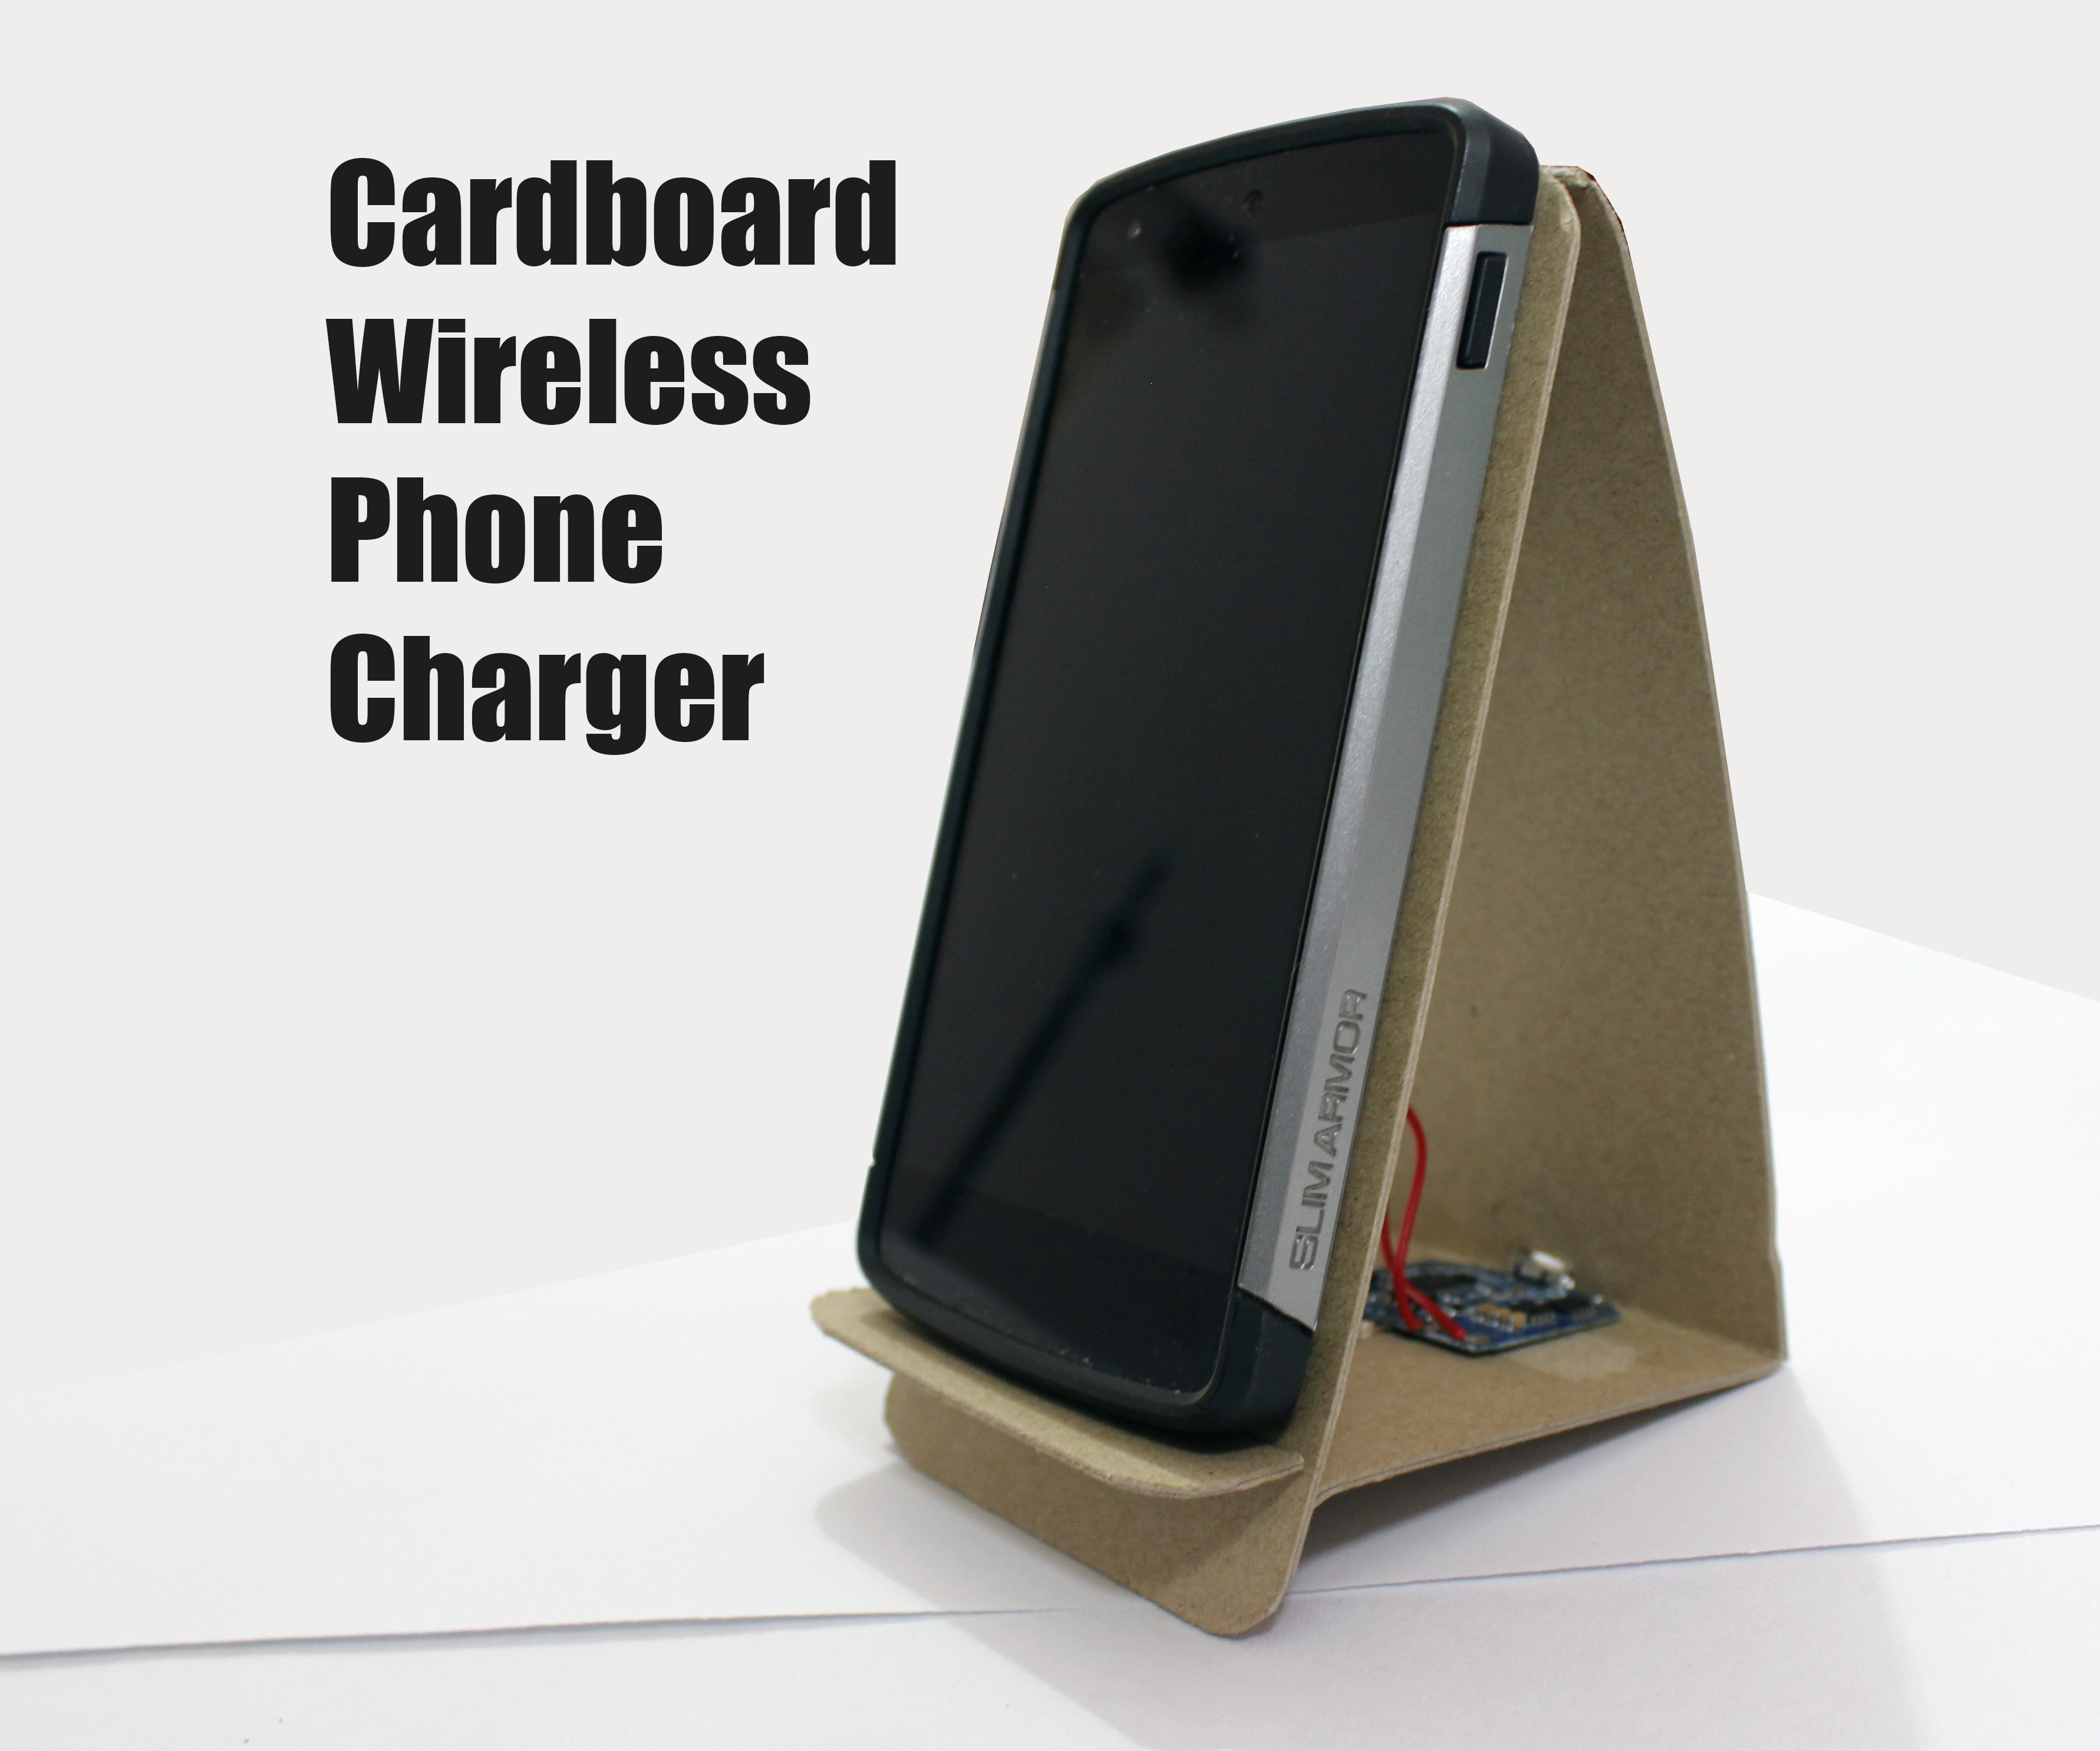 Cardboard Wireless Charger